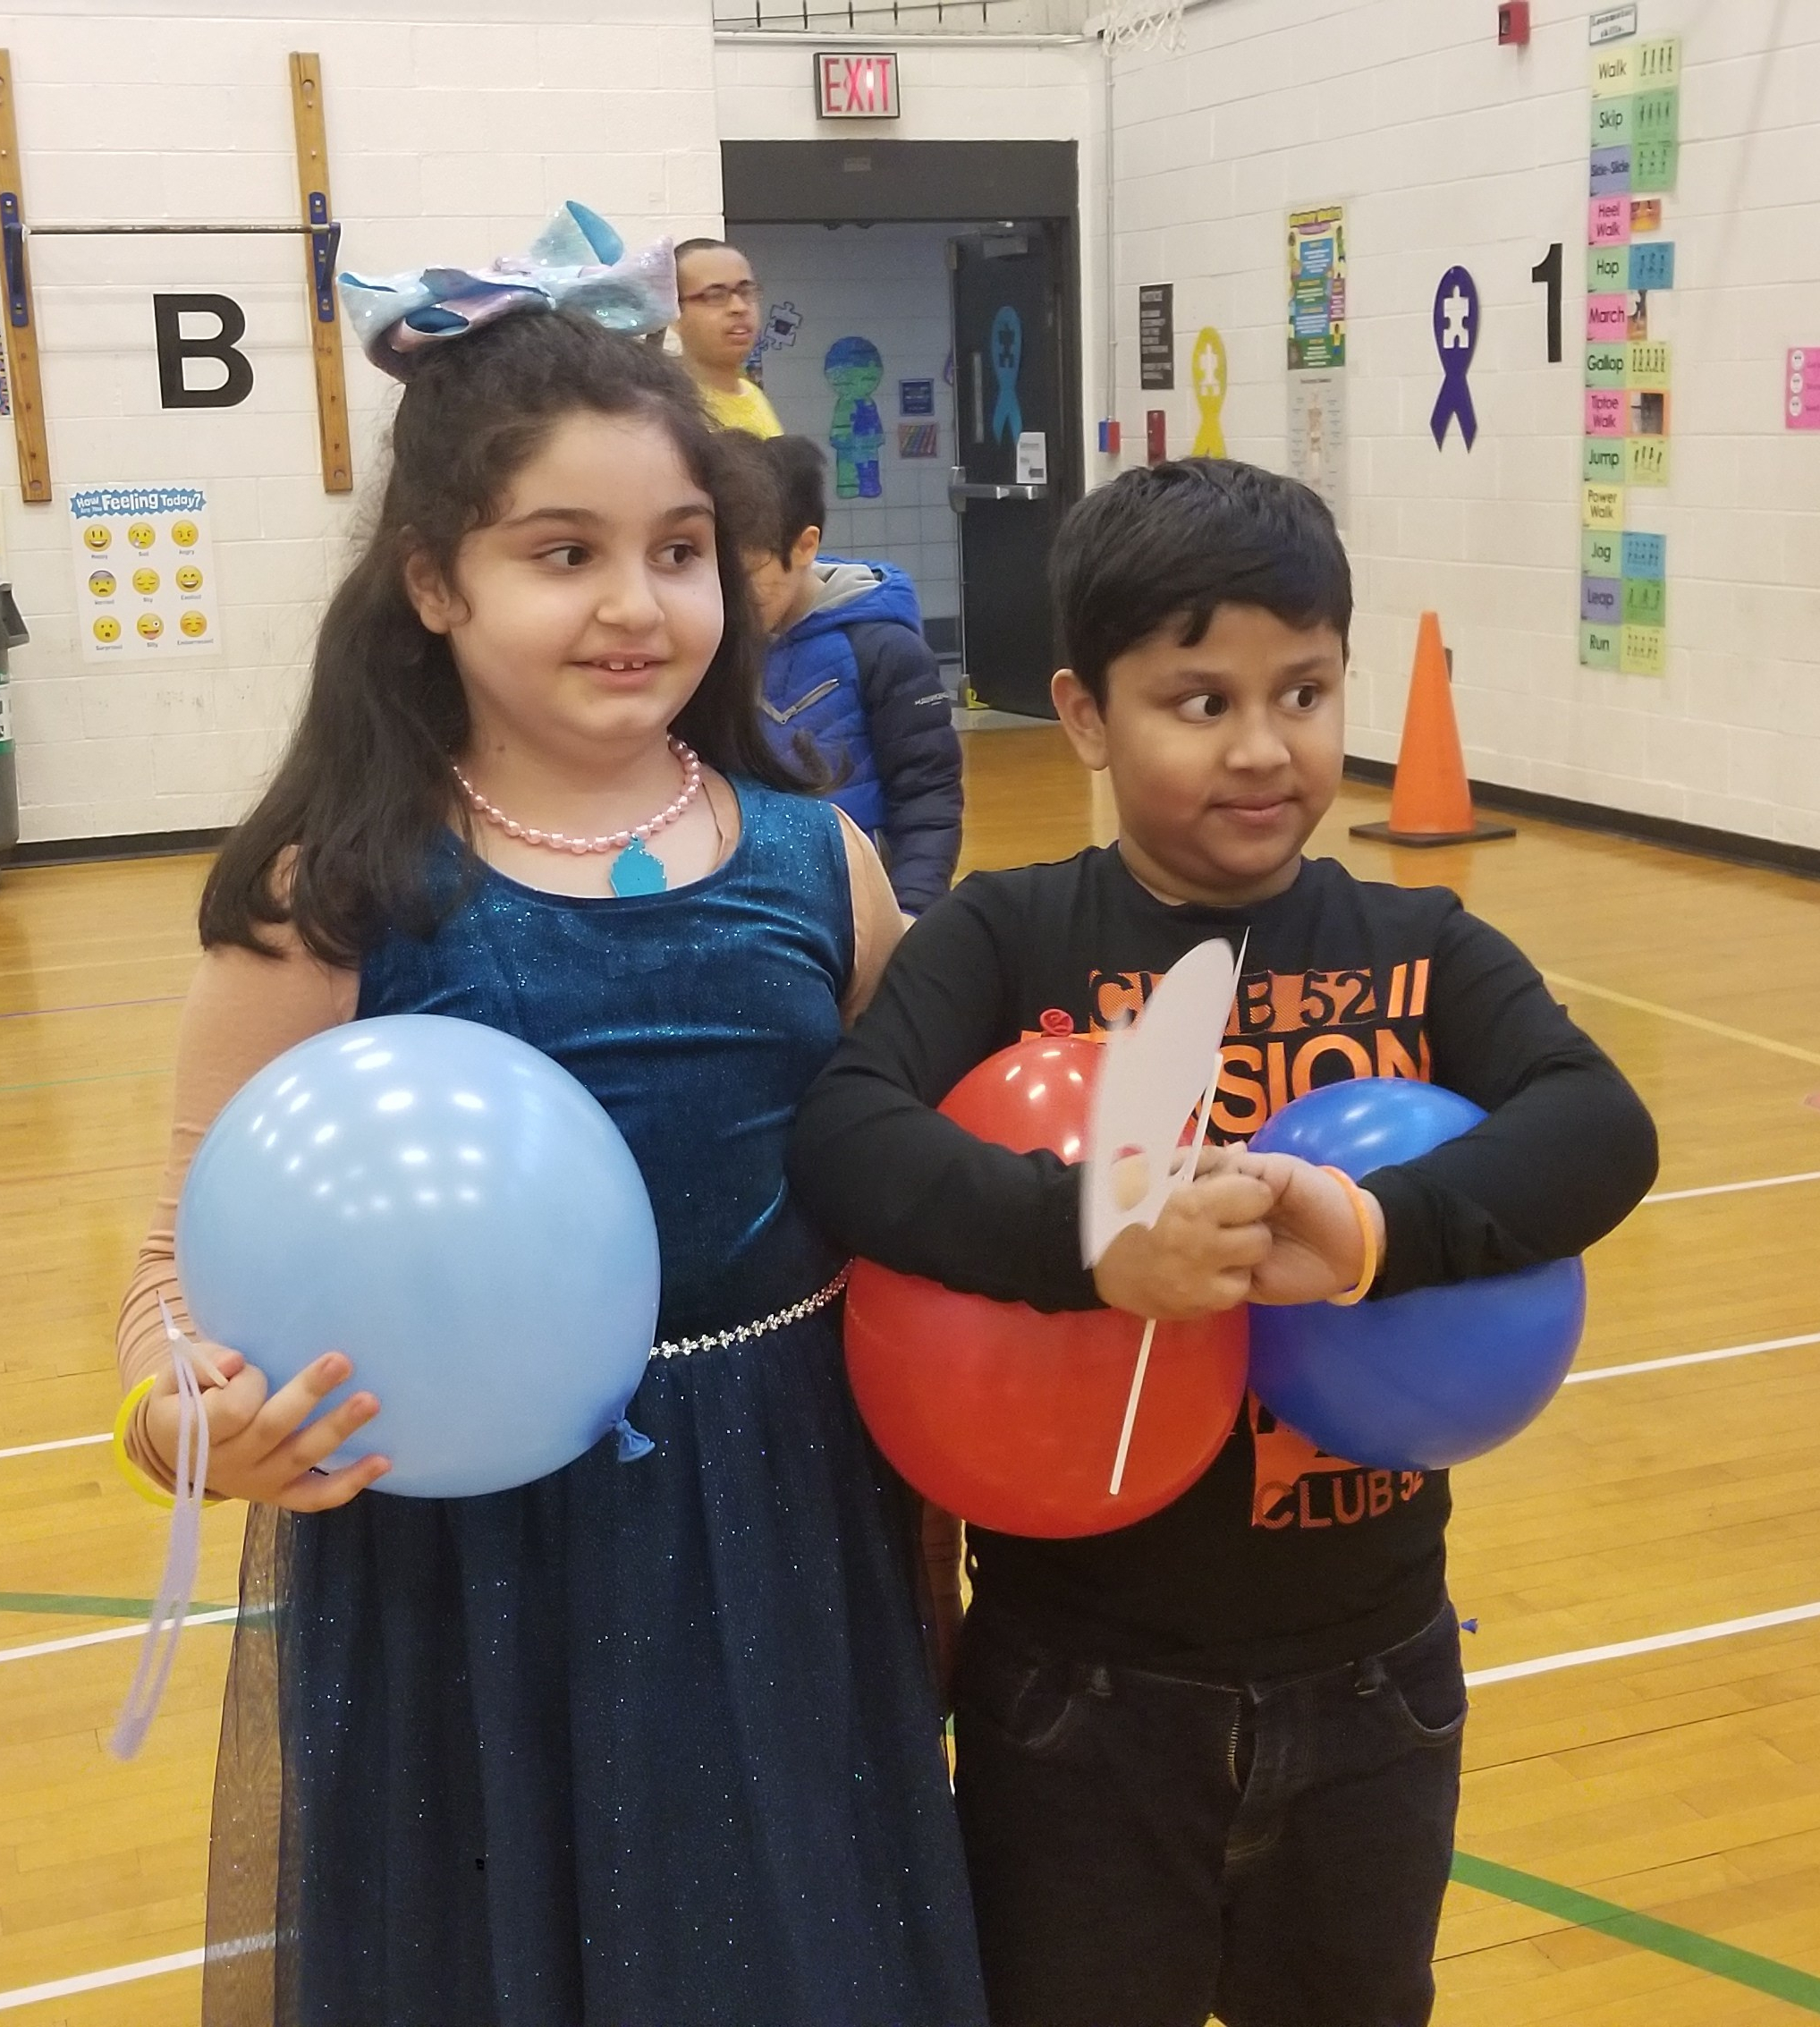 2 Students enjoying balloons and dancing in the gym.